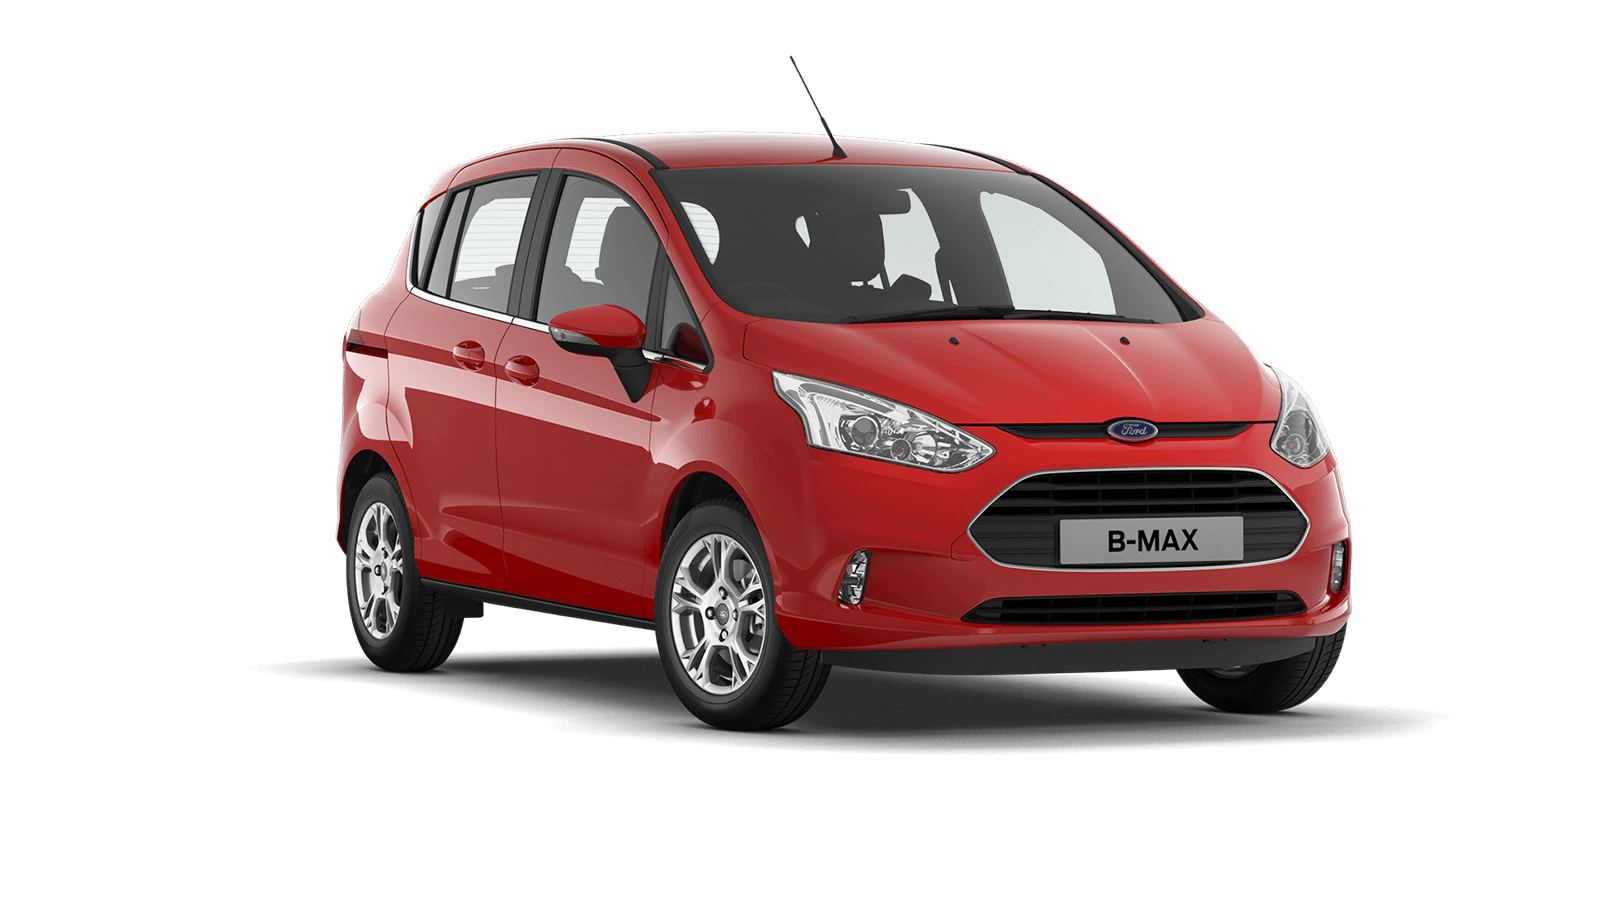 new ford b max at lookers ford book a test drive explore the range. Black Bedroom Furniture Sets. Home Design Ideas